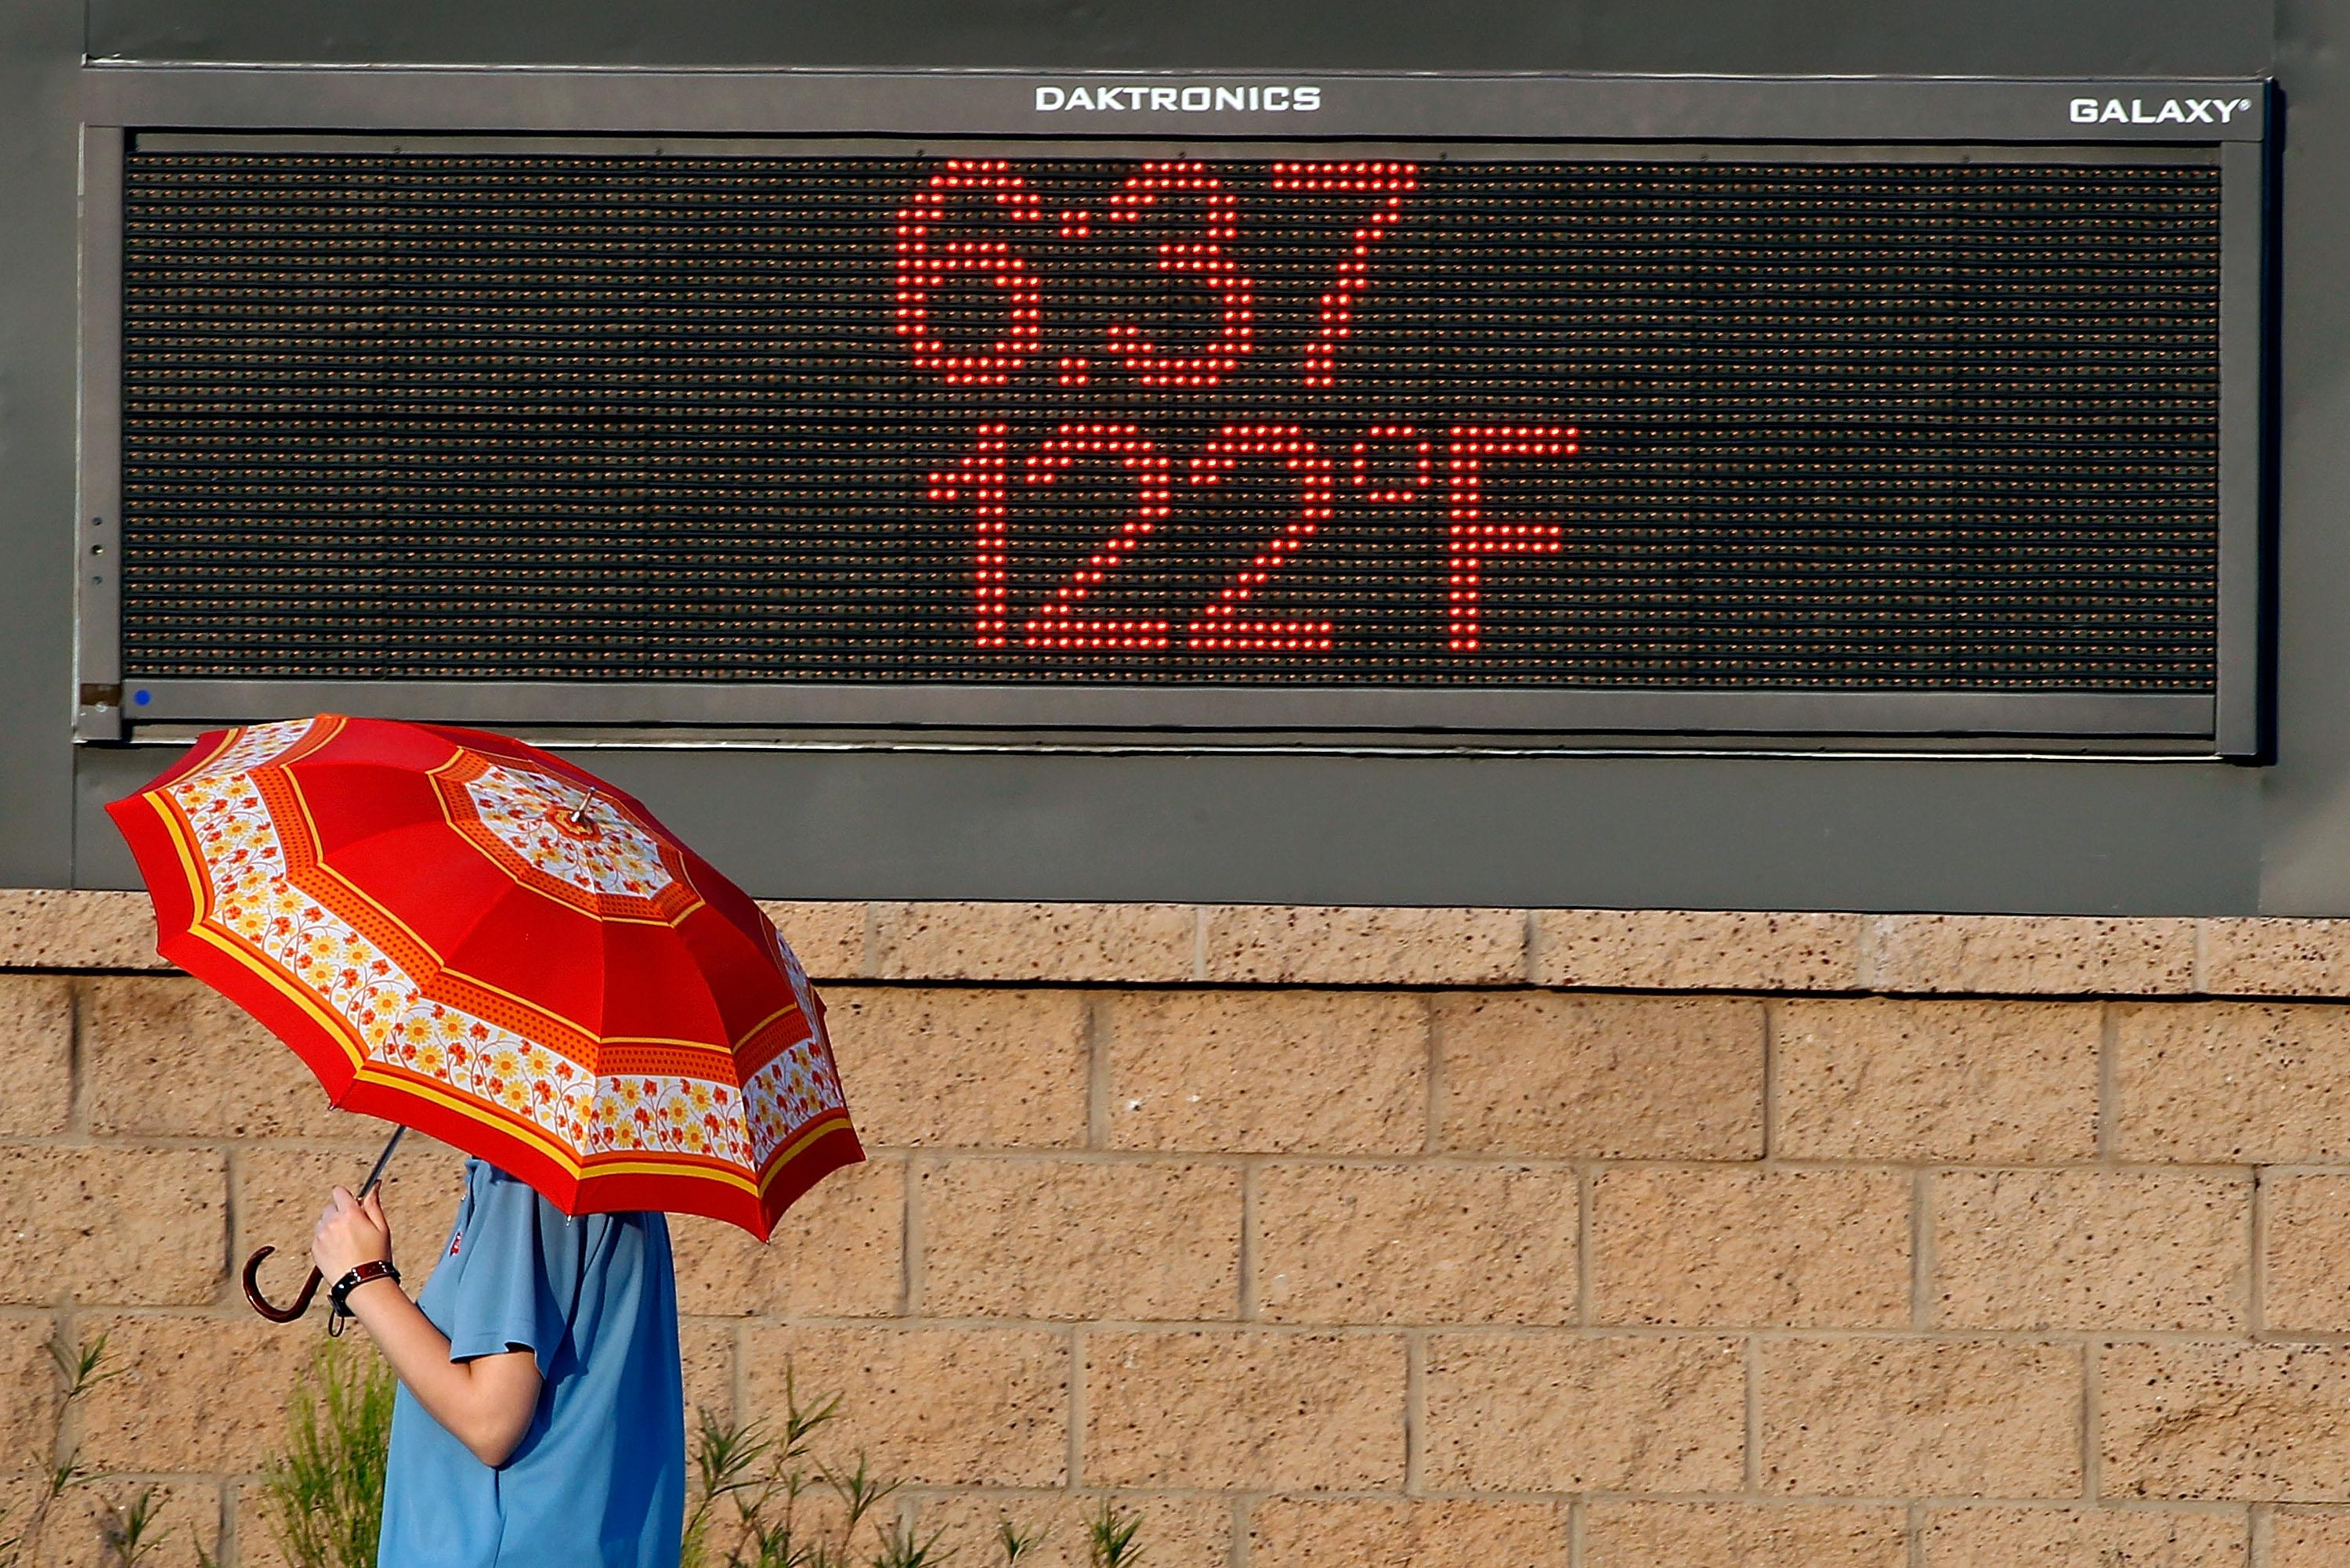 U.S.  southwest swelters in one of its hottest summers